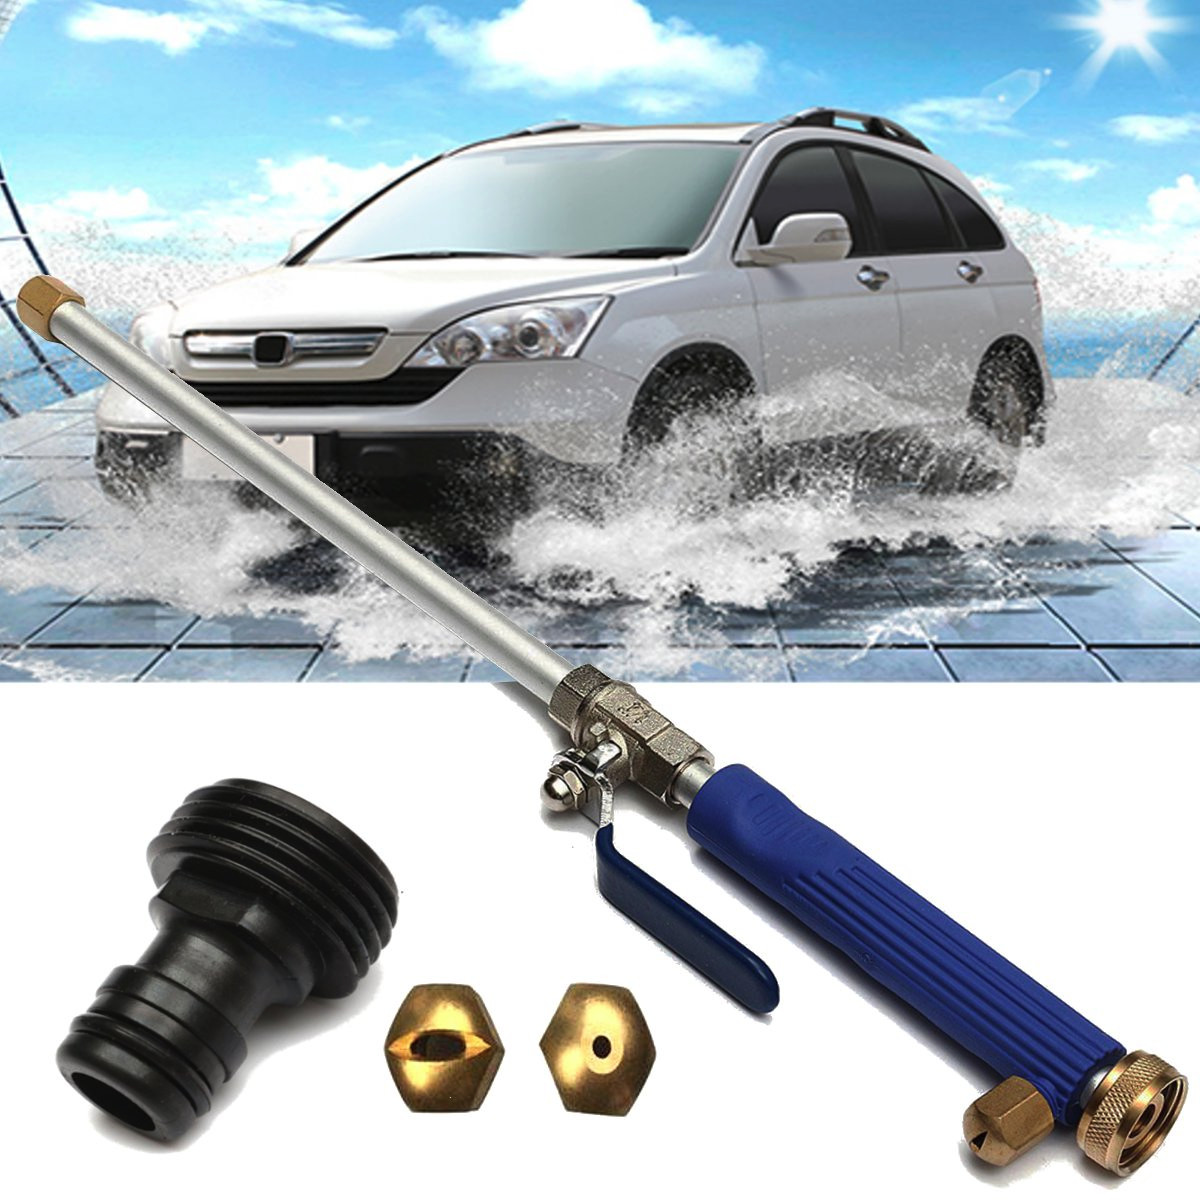 Spray-Nozzle Hose-Wand-Attachment Power-Car-Washer Aluminium High-Pressure Water-Gun title=